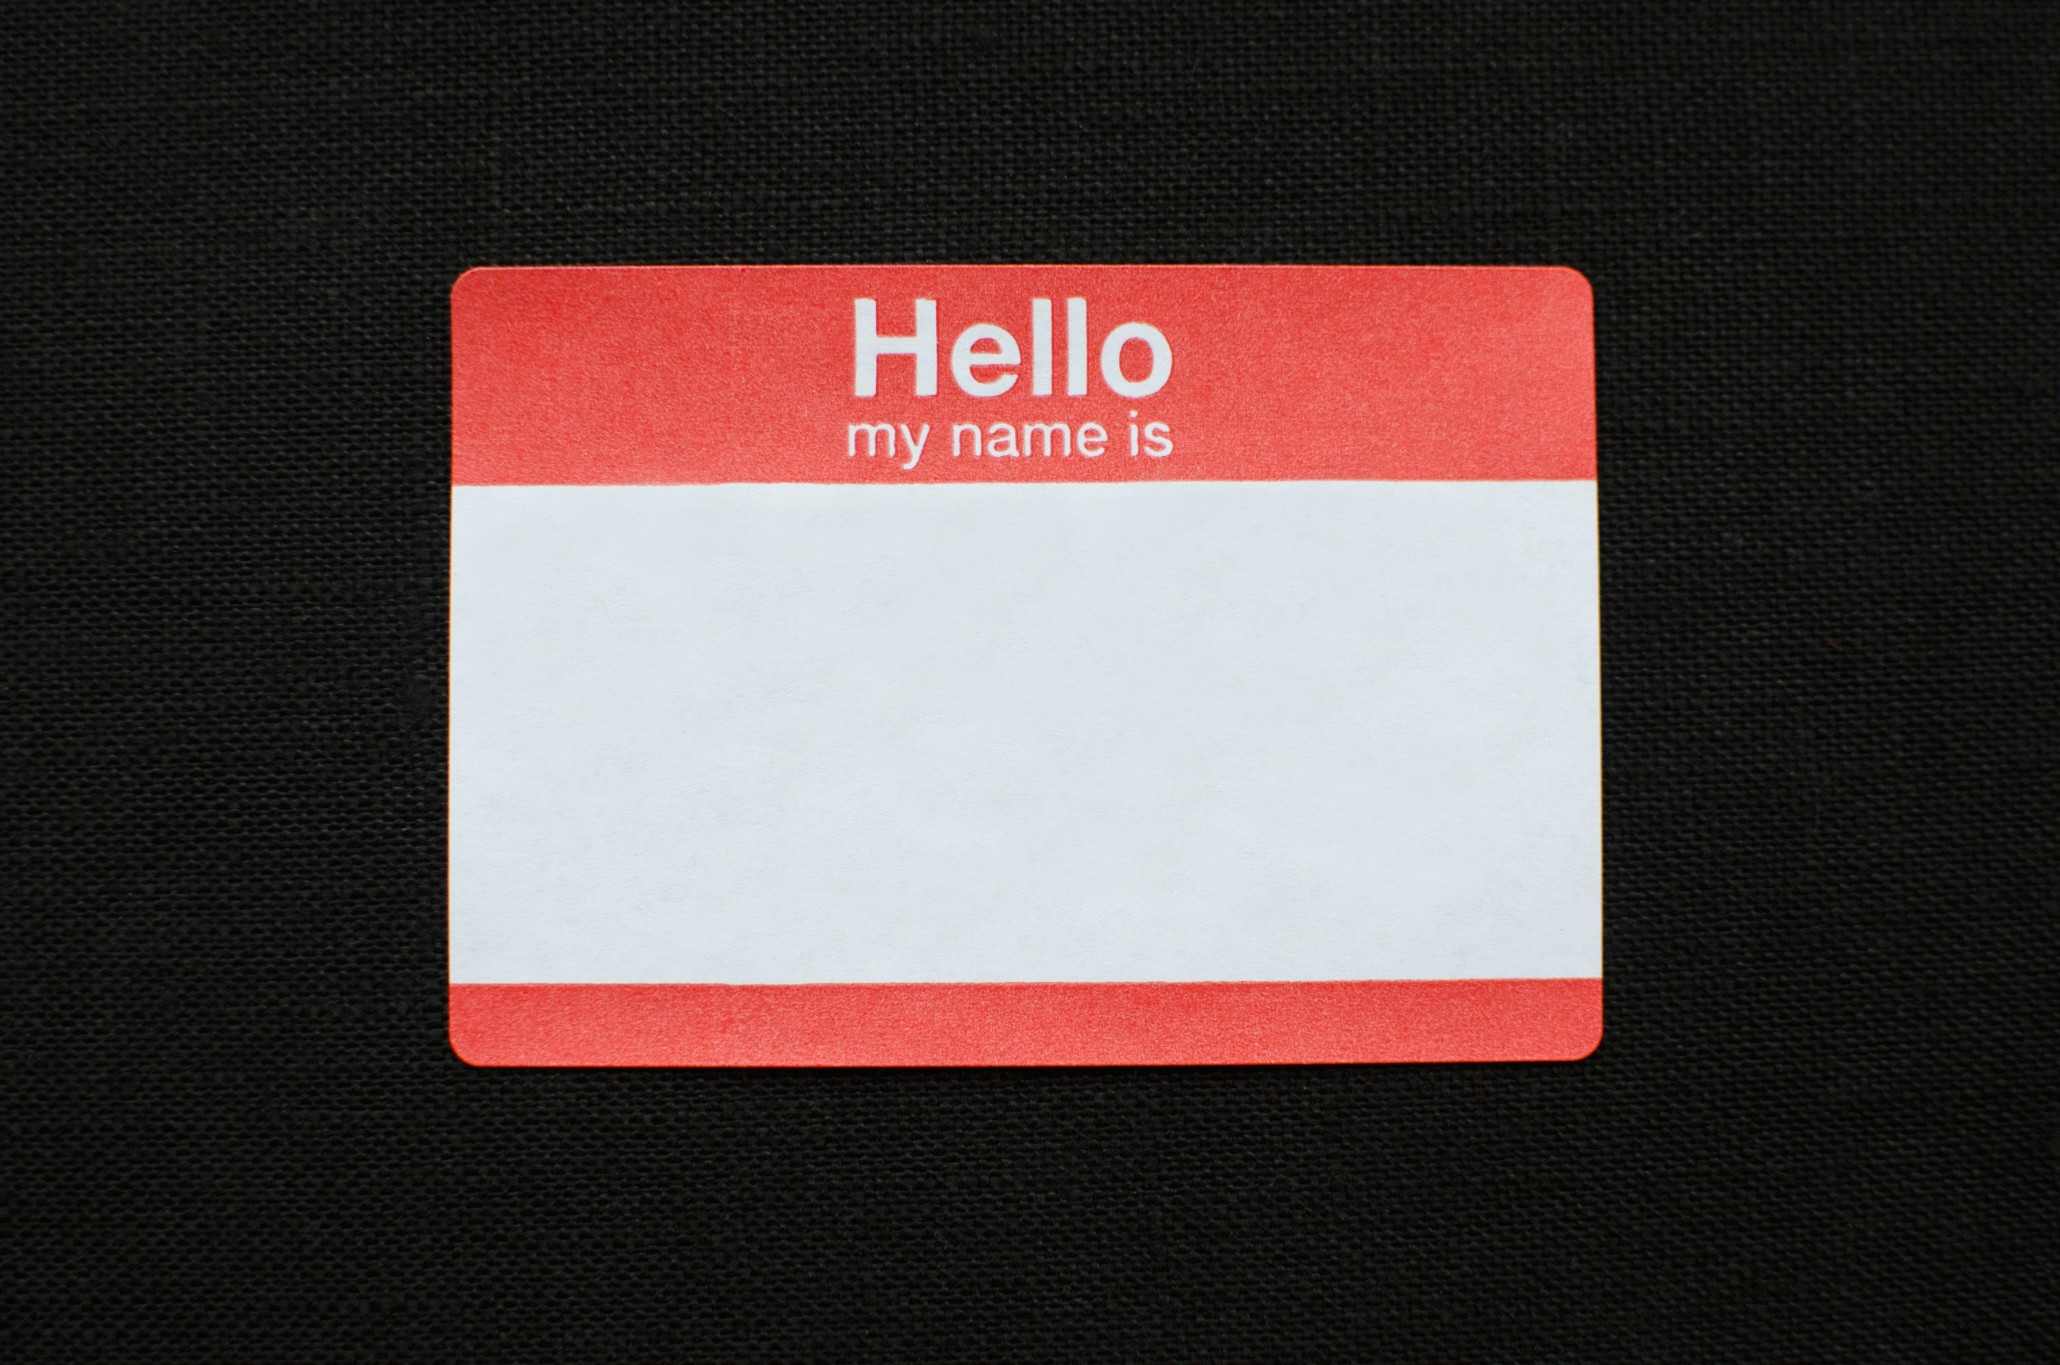 blank-name-tag-sticker-with-room-for-overlay-s_t20_09wm76.jpg